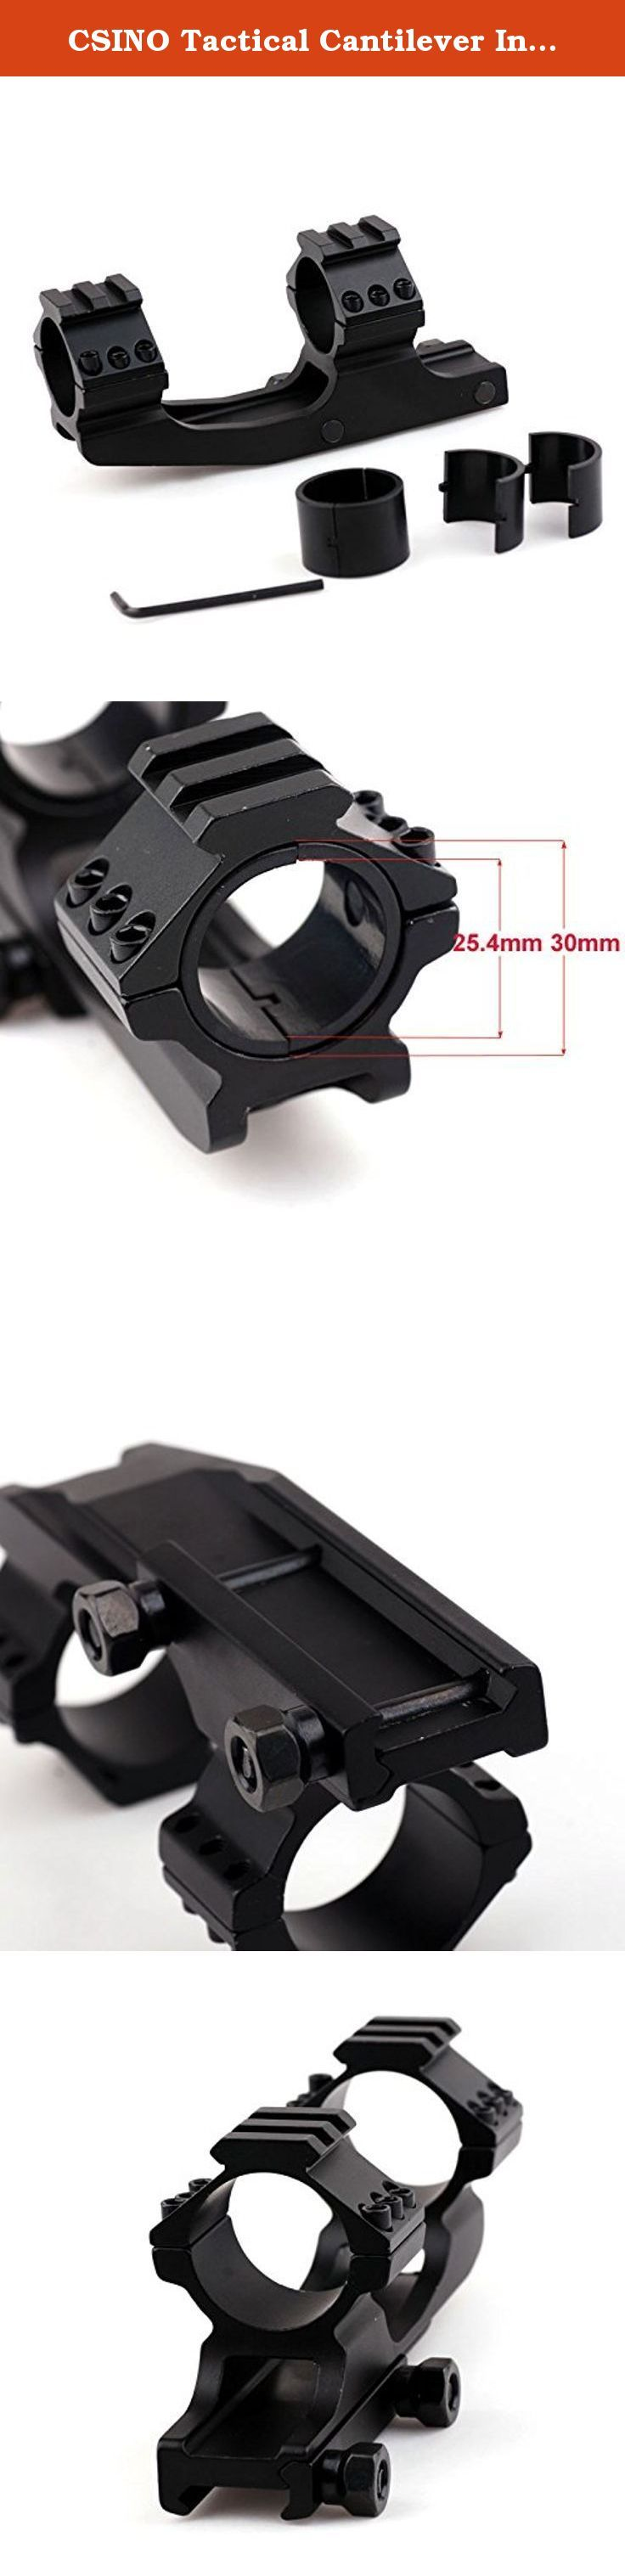 """CSINO Tactical Cantilever Integrated Dual Ring Flat Top Scope Mount Holder For AR AR-15 (30mm ring). Finish:Black Matte Ring Diameter:1""""(25.4 mm) Type: Rifle Base What is included: 1 x cantilever rifle scope mount 1 x Allen key."""